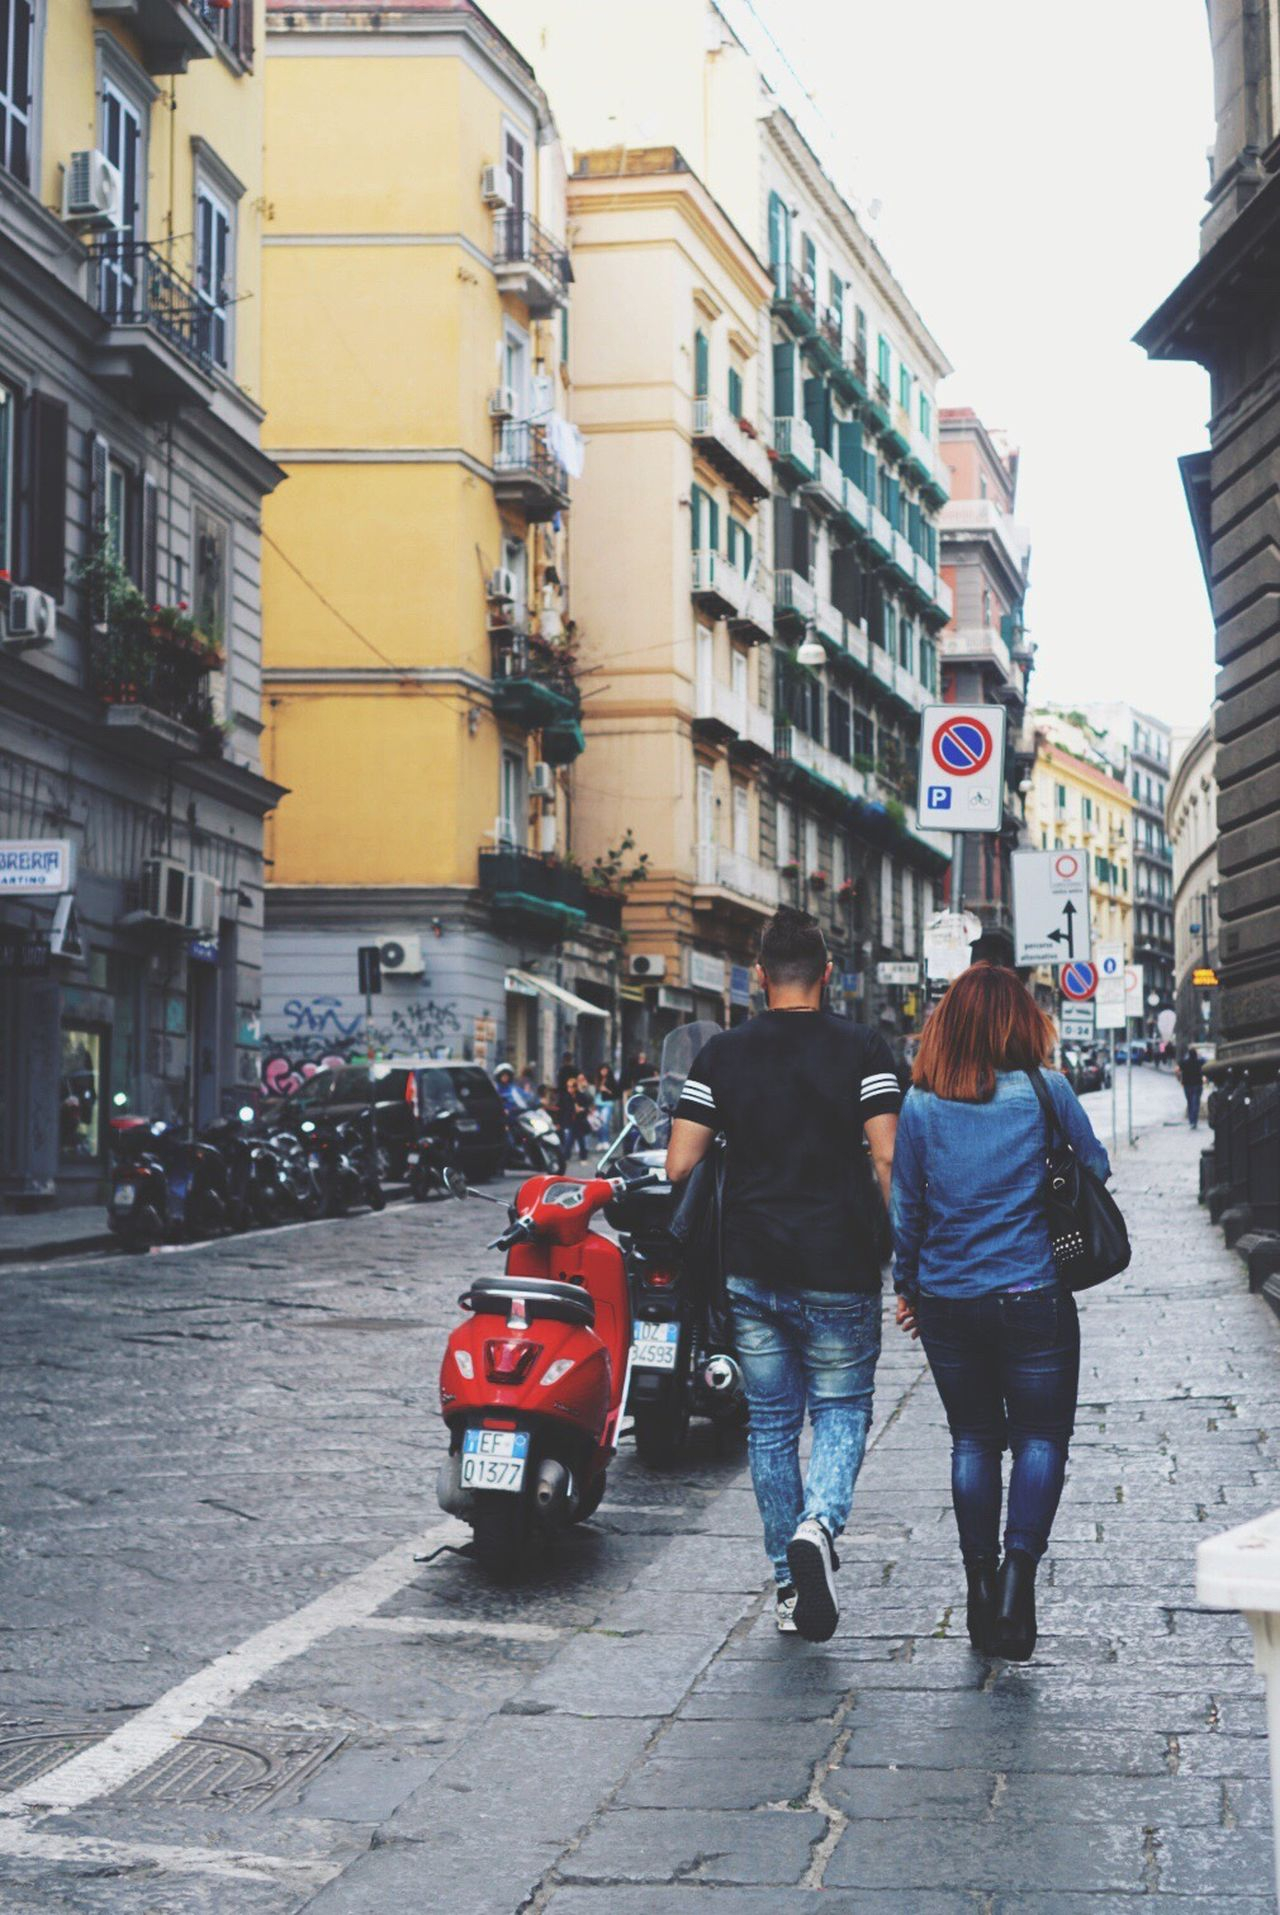 Two People City City Life Building Exterior Architecture Street Car Men City Street Women Built Structure Rear View Lifestyles Adult Adults Only Transportation Togetherness Full Length Outdoors Day Naples, Italy Live For The Story The Street Photographer - 2017 EyeEm Awards